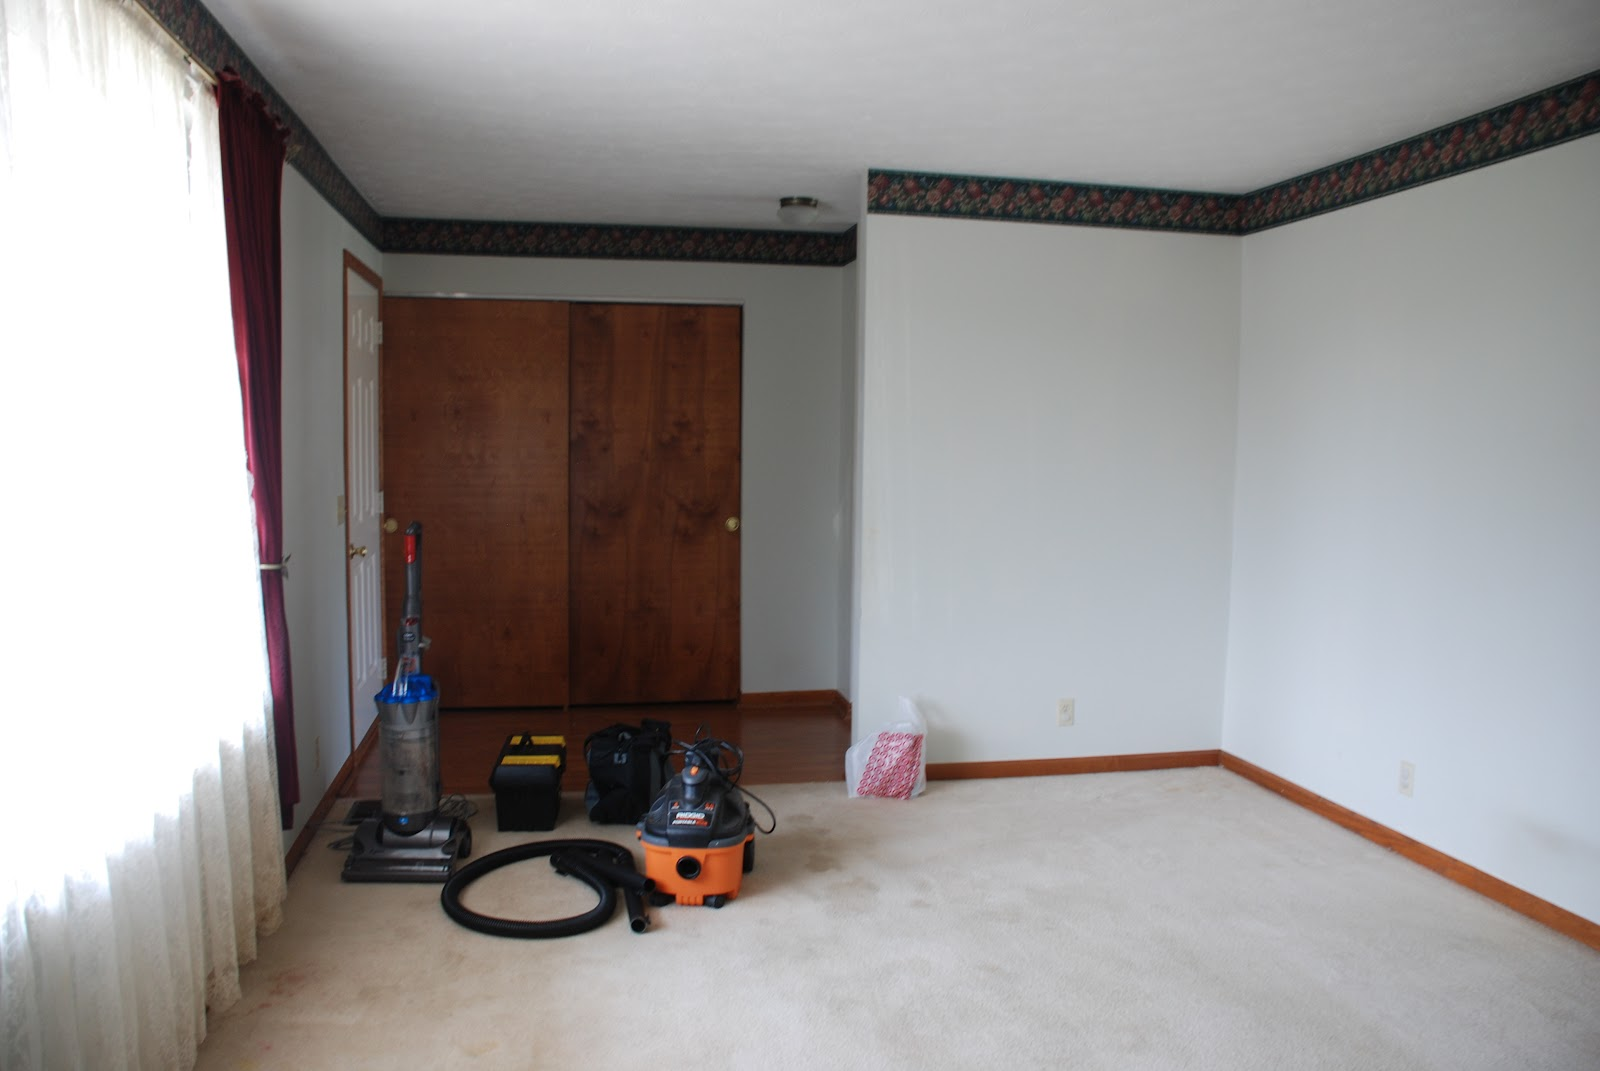 The 12 Year Plan The William Morris Project Living Room